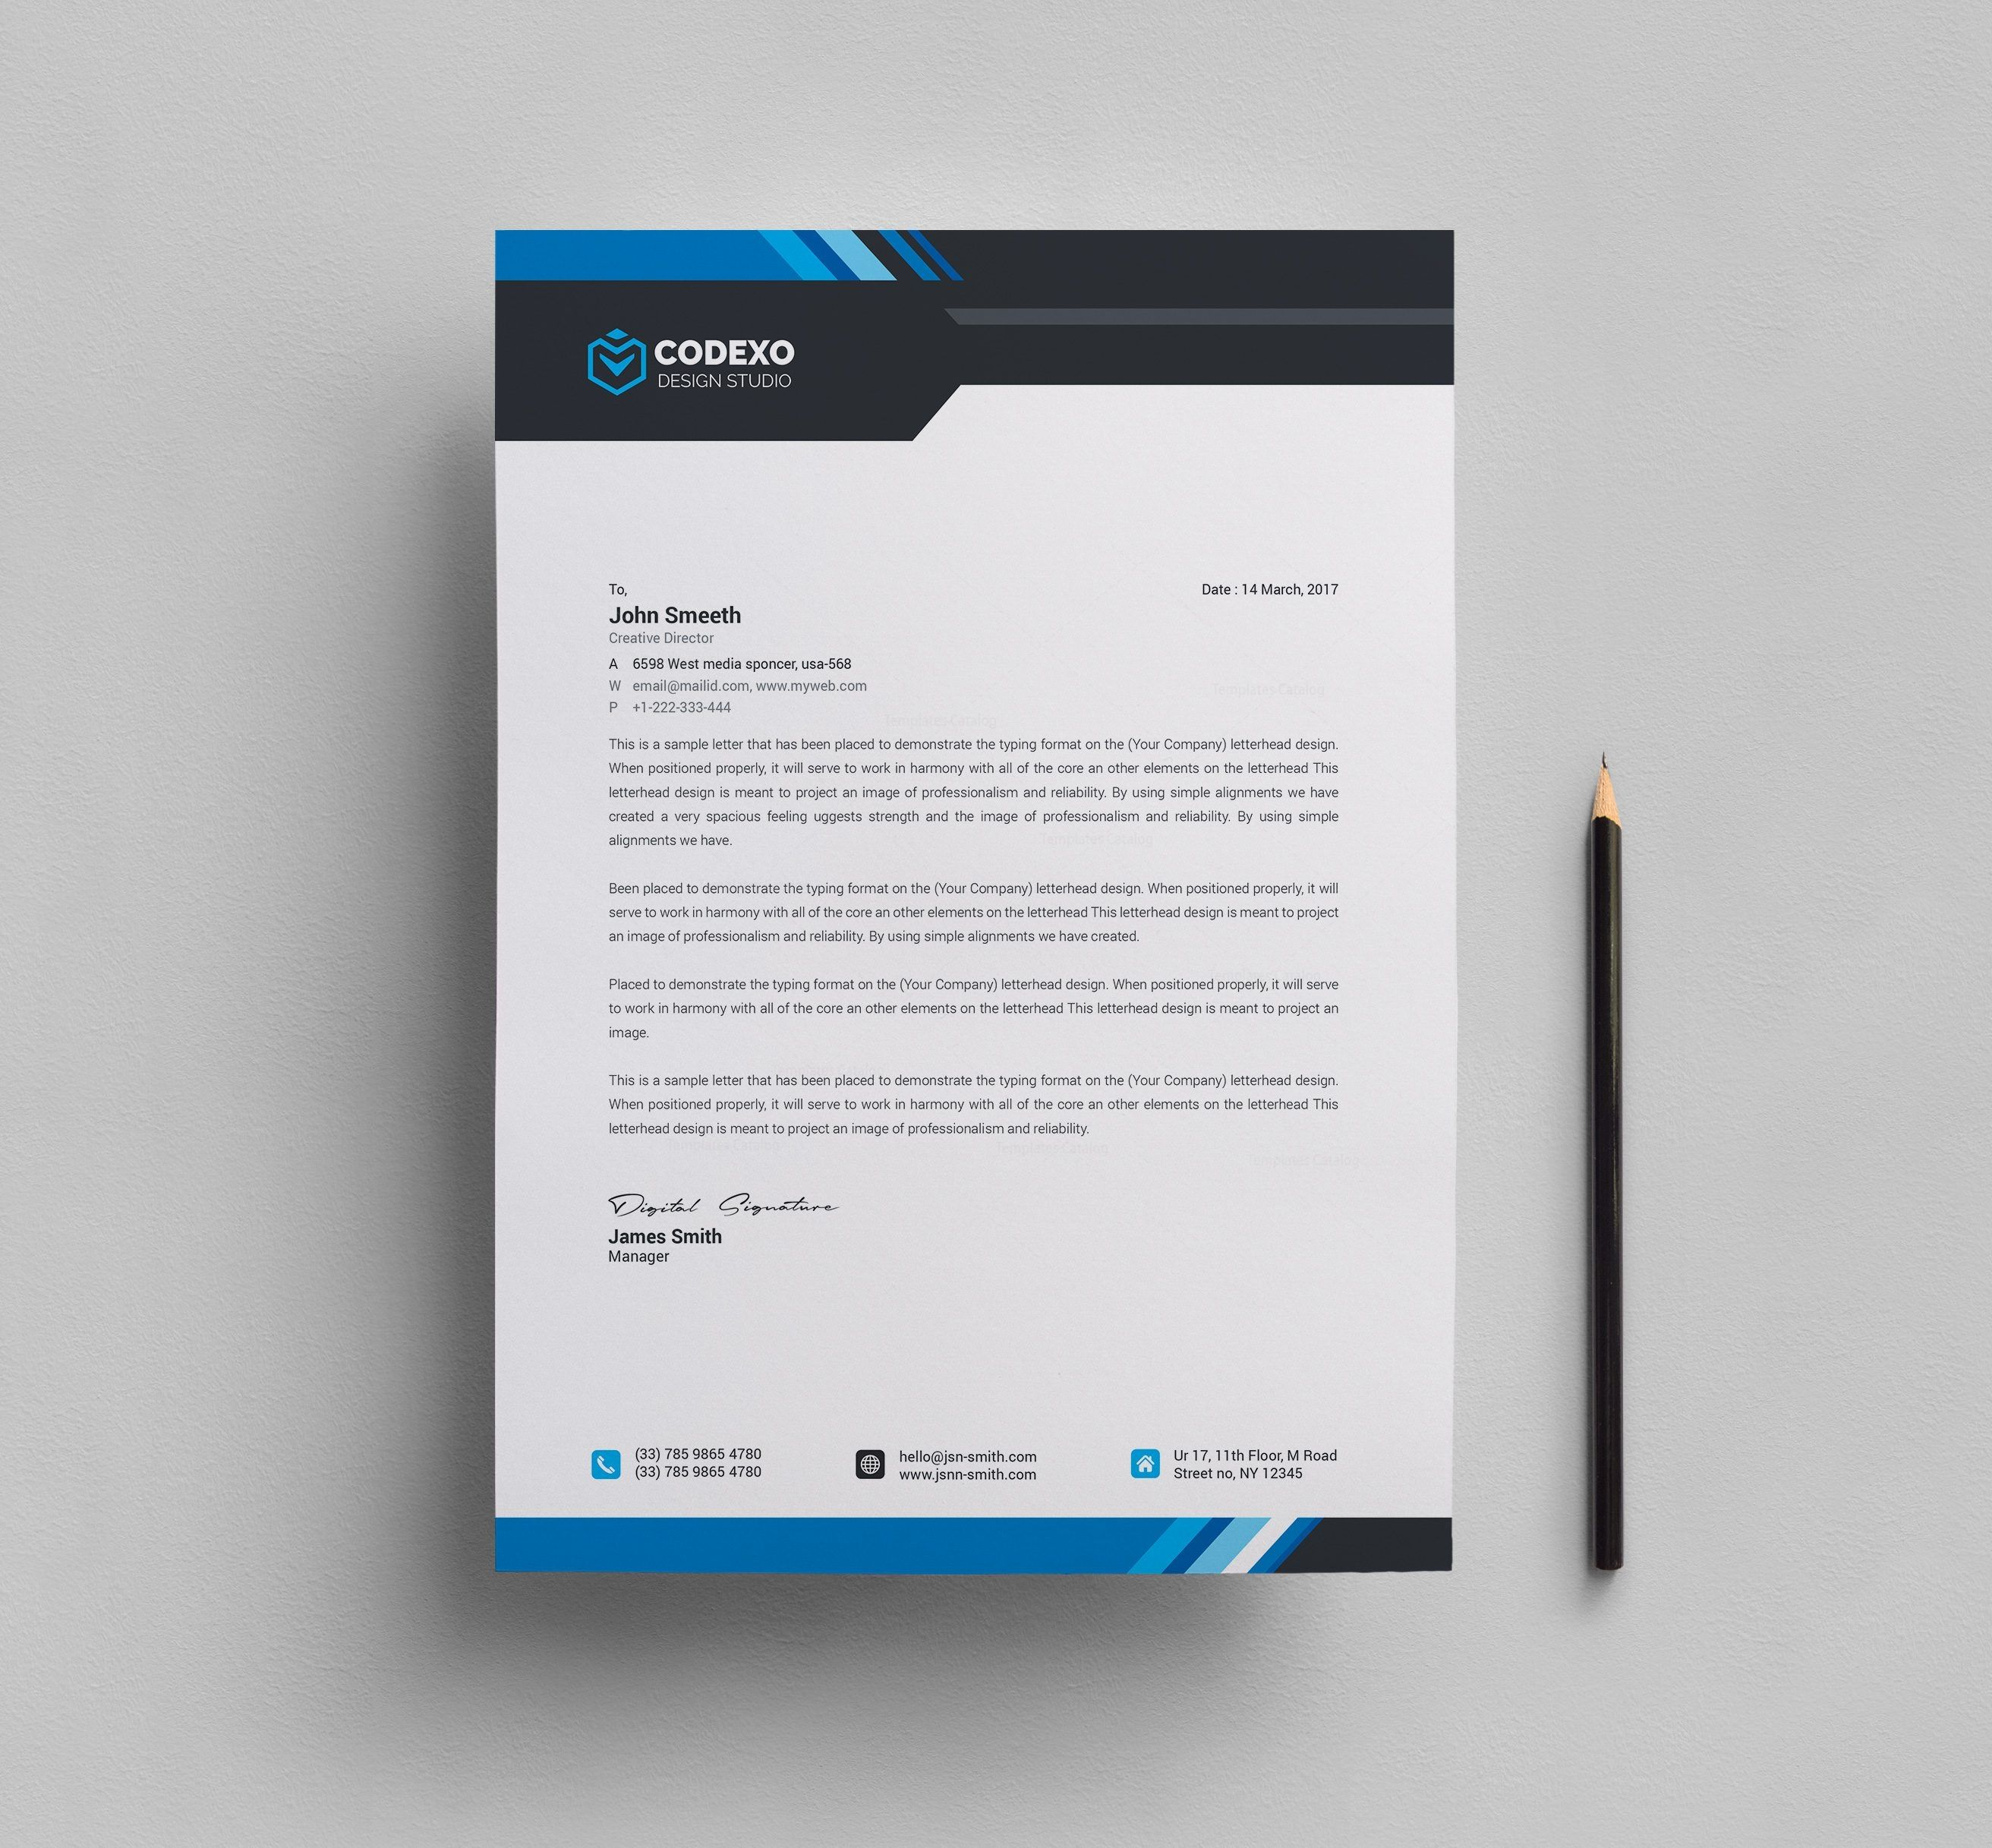 high quality letterhead stationary template 000609 staffing recruiter resume sample academic cv profile creative career objective